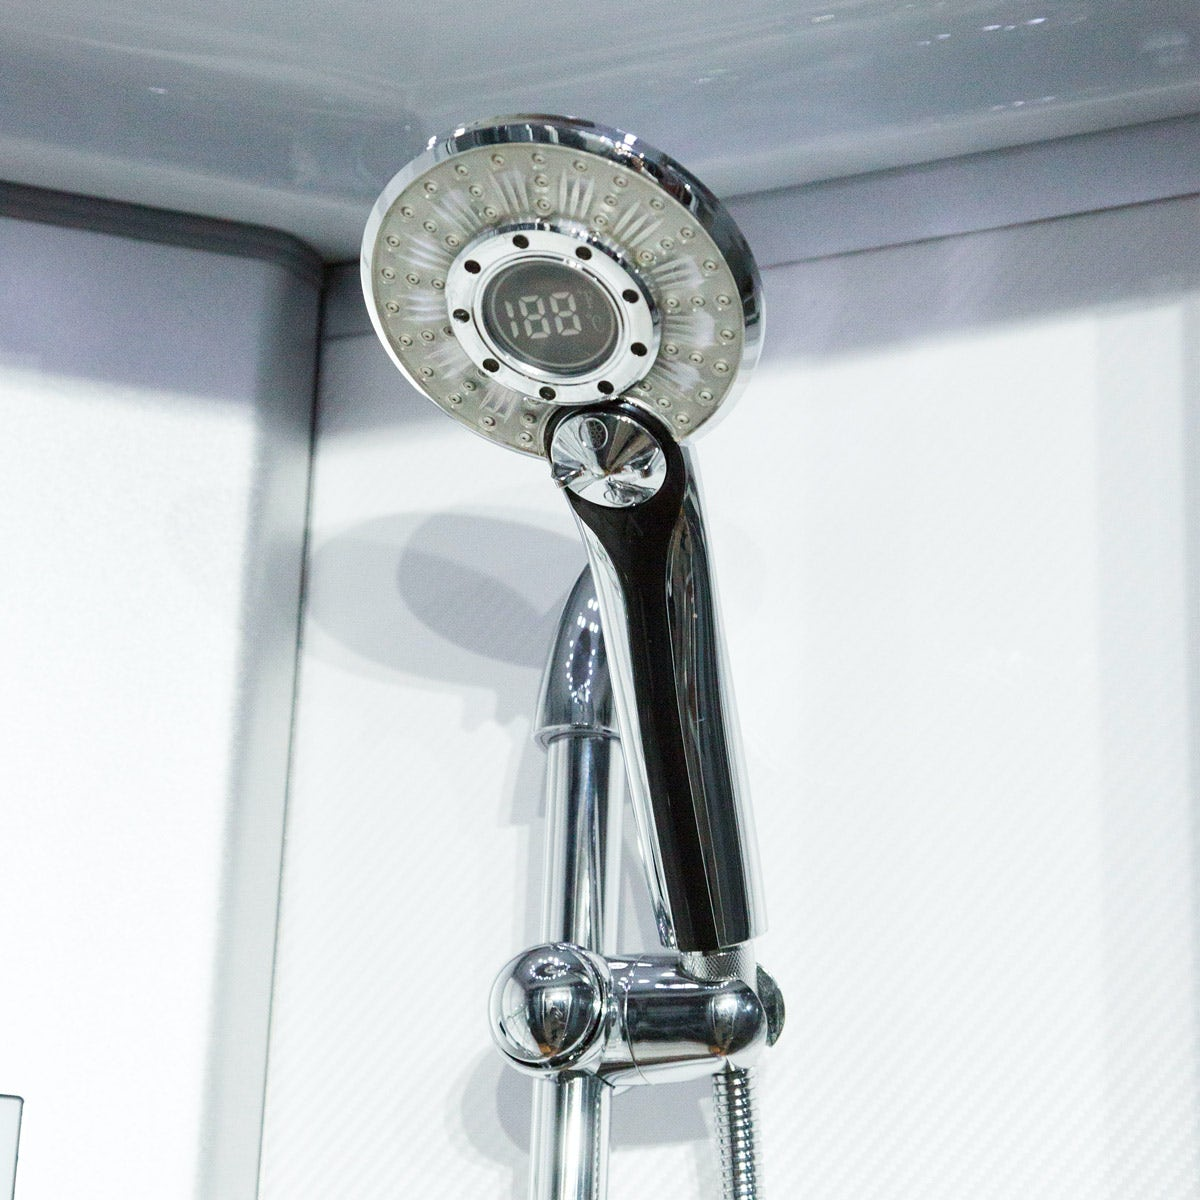 Insignia digital hand shower